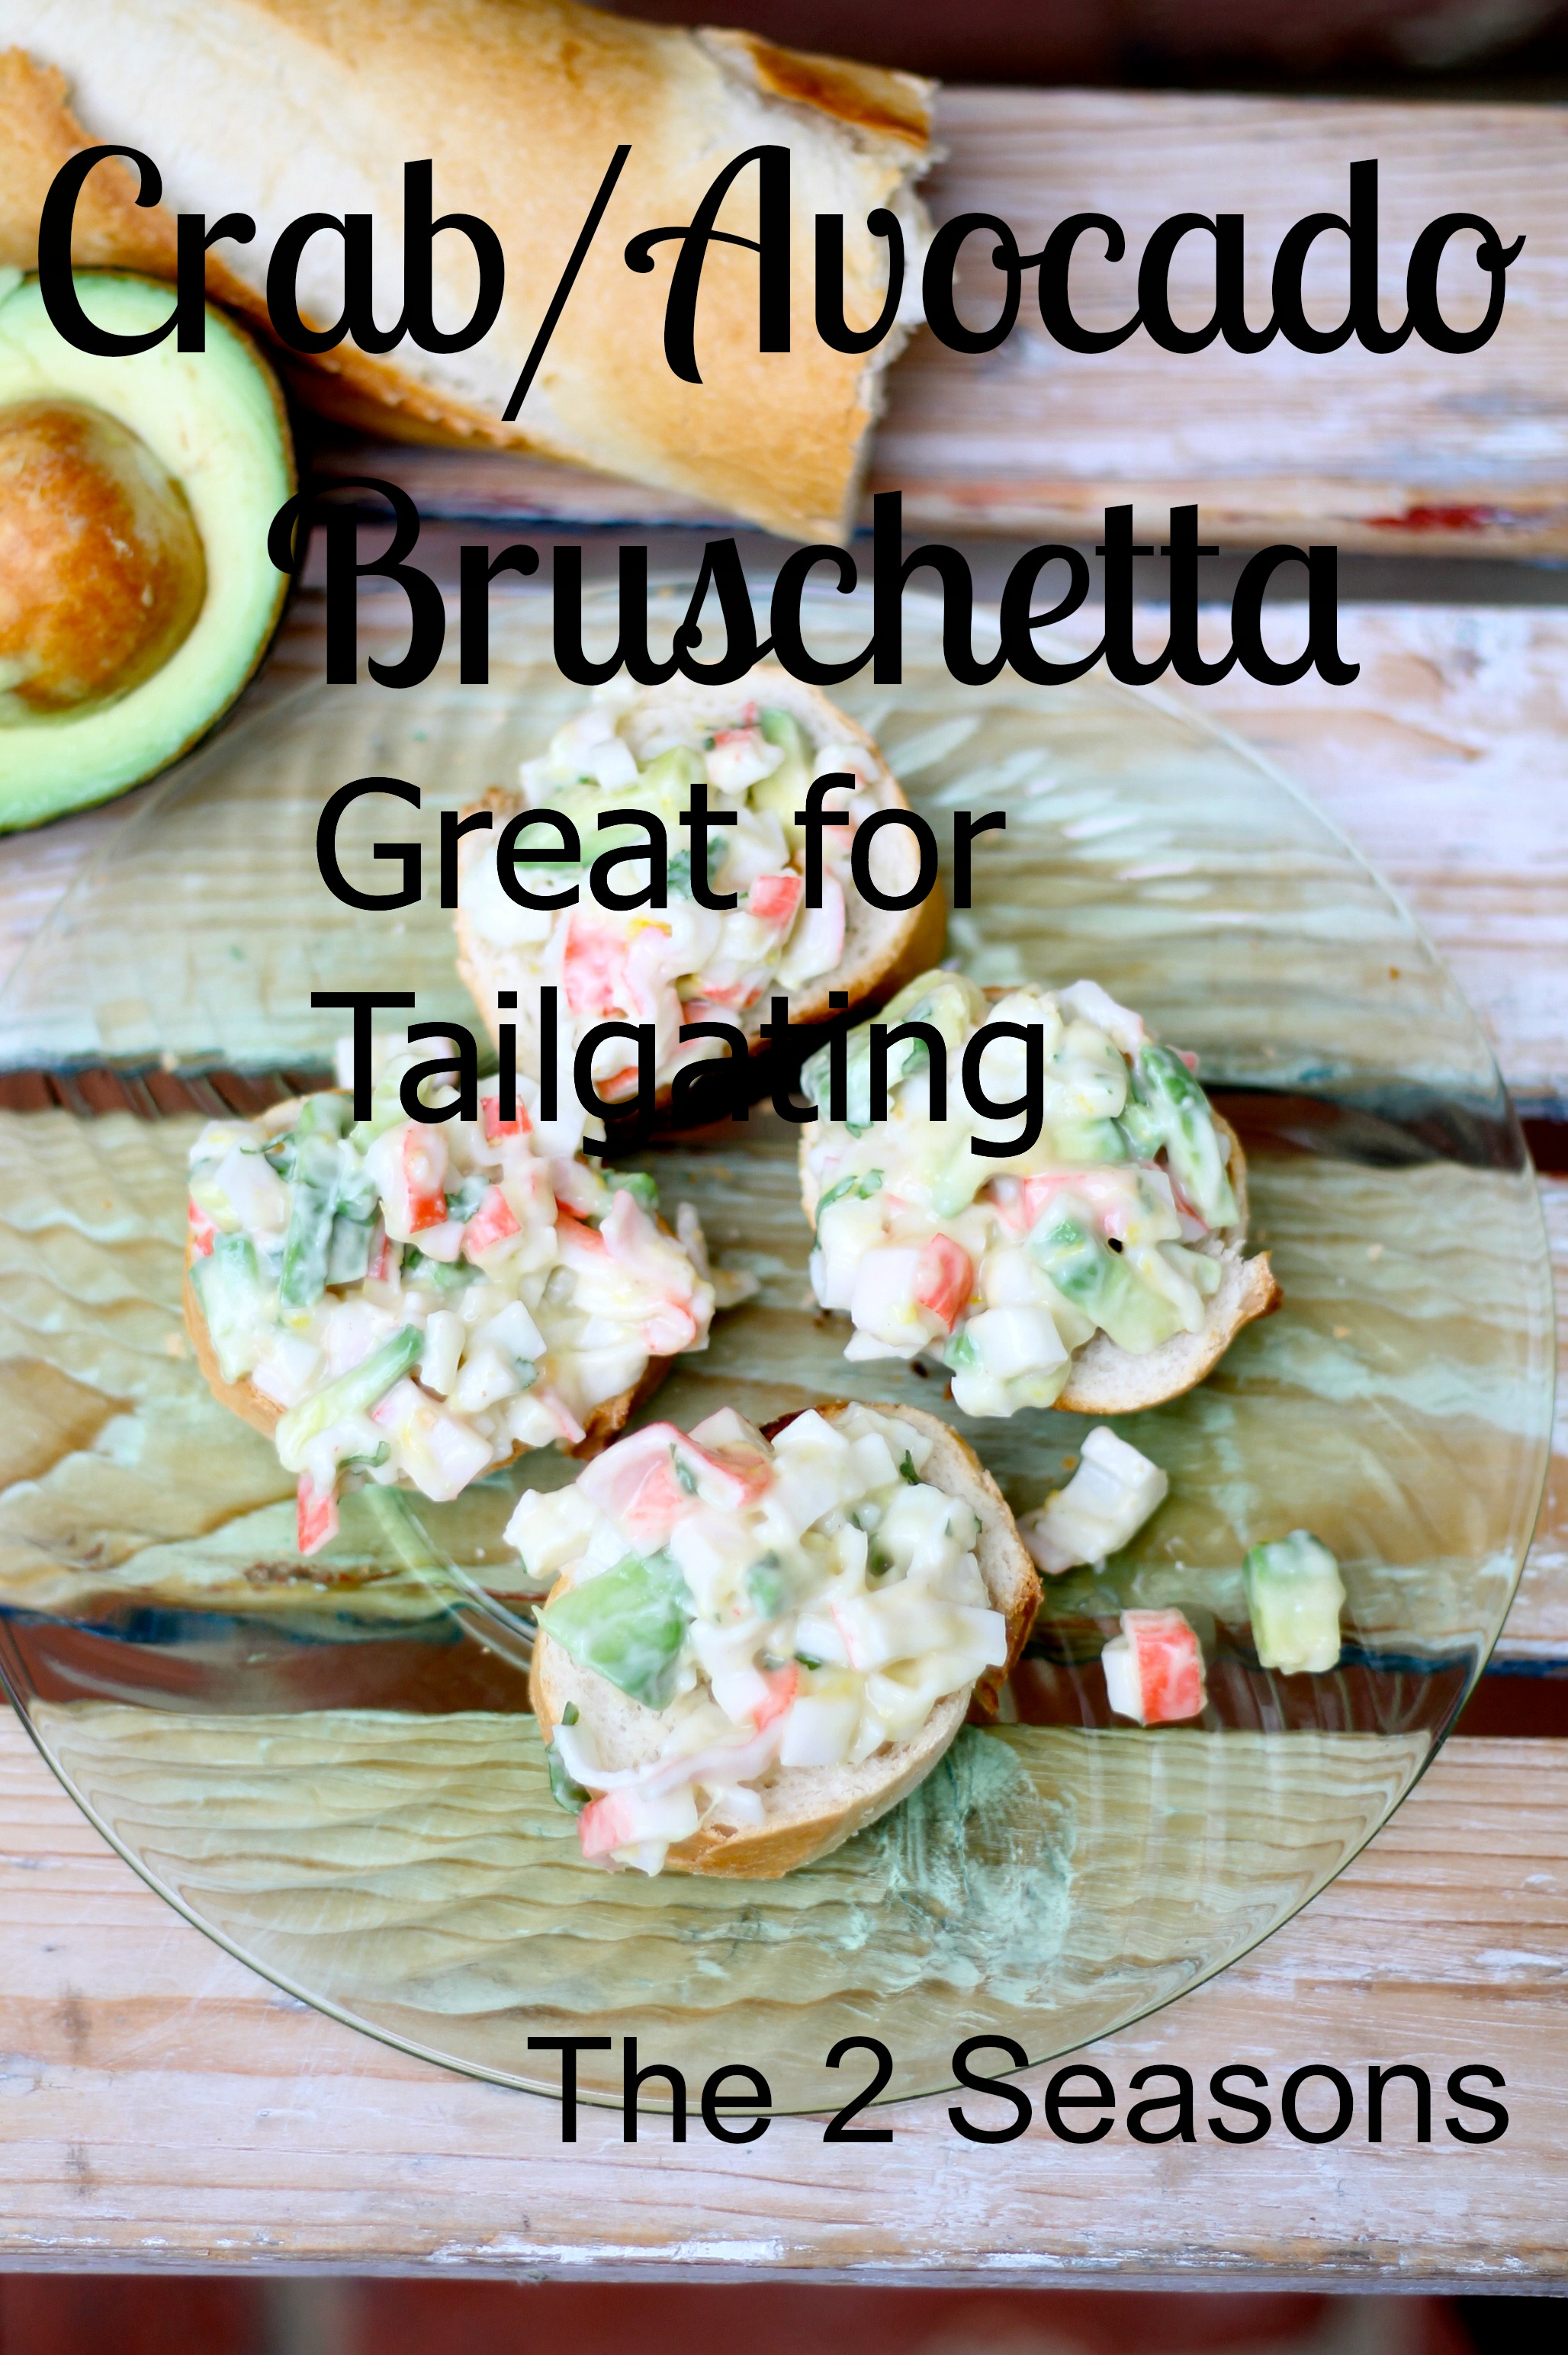 CrabAvocado Bruschetta - Avocado Salad Recipe